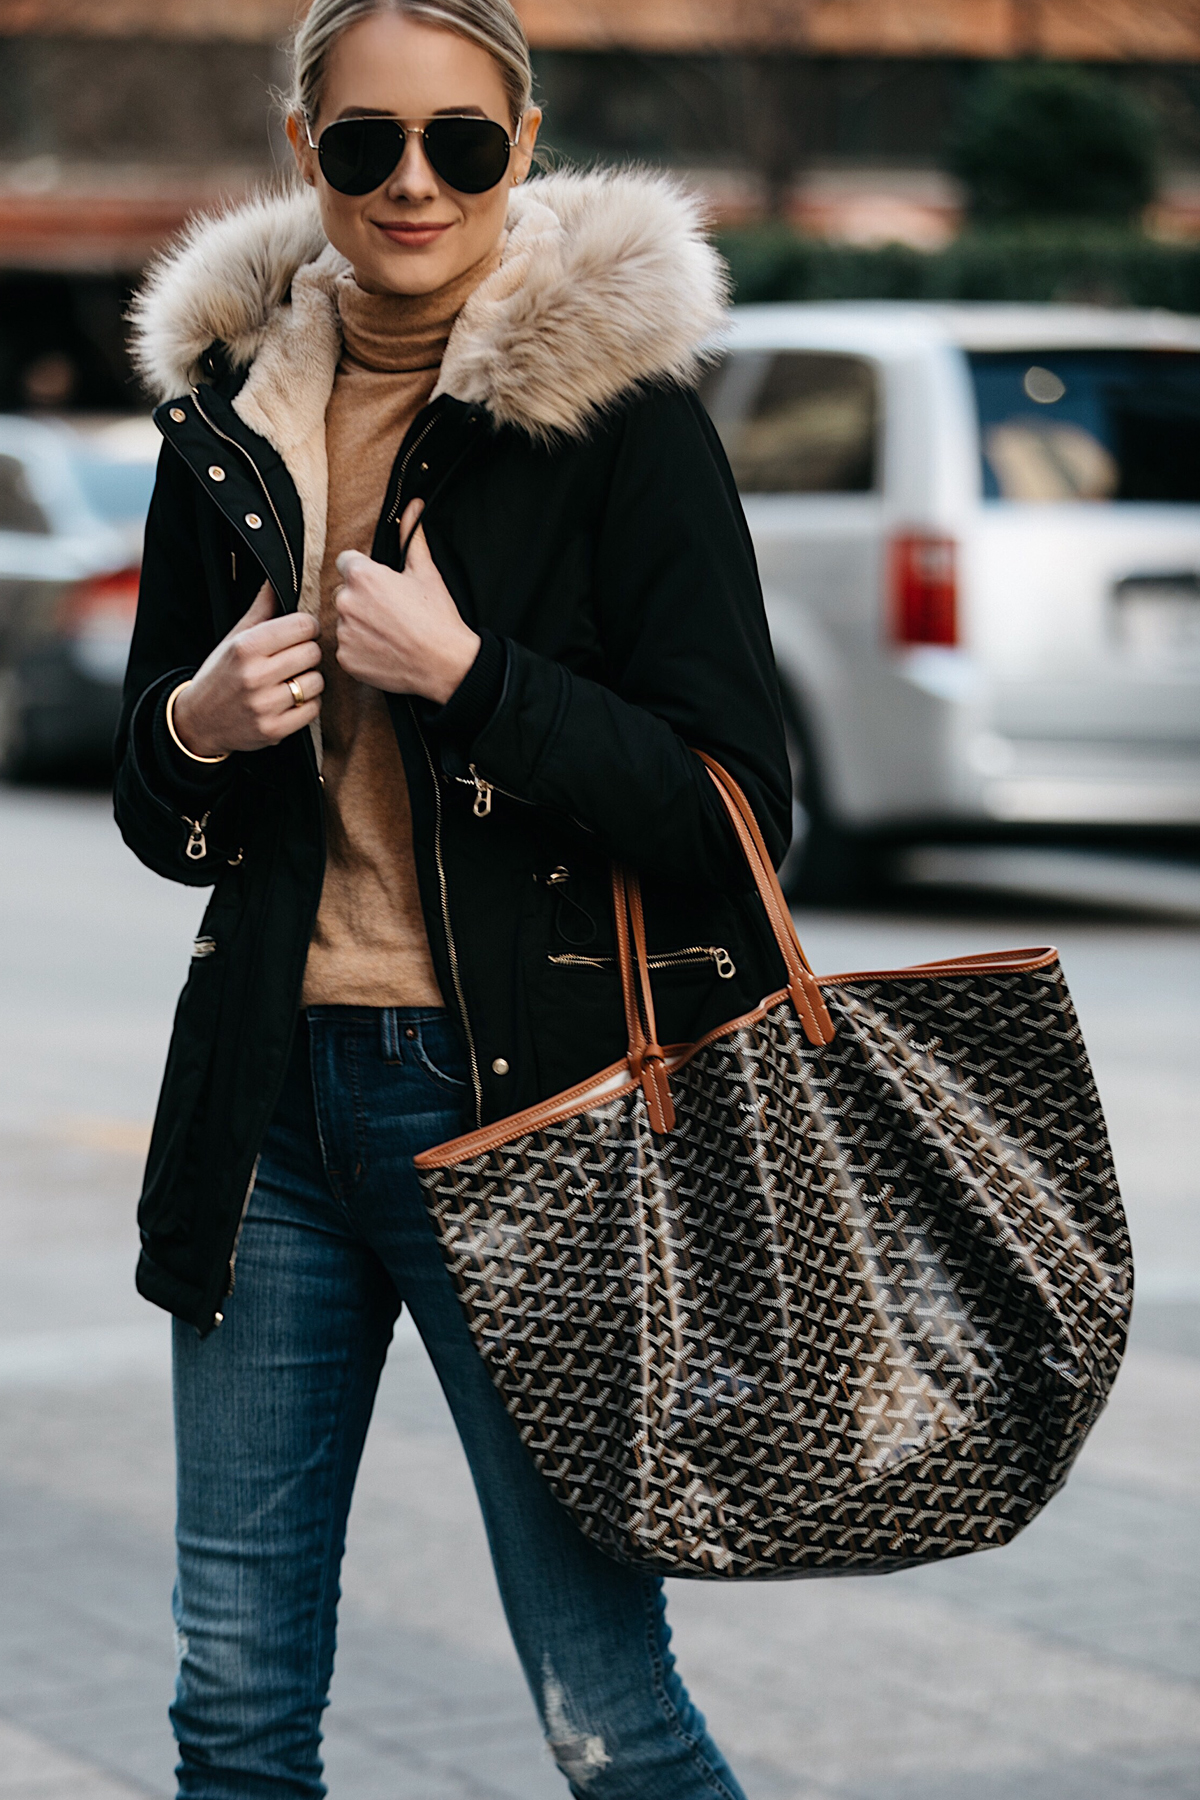 Blonde Woman Wearing Zara Faux Fur Trimmed Black Parka Jacket Goyard Tote Denim Jeans Tan Turtleneck Fashion Jackson Dallas Blogger Fashion Blogger Street Style